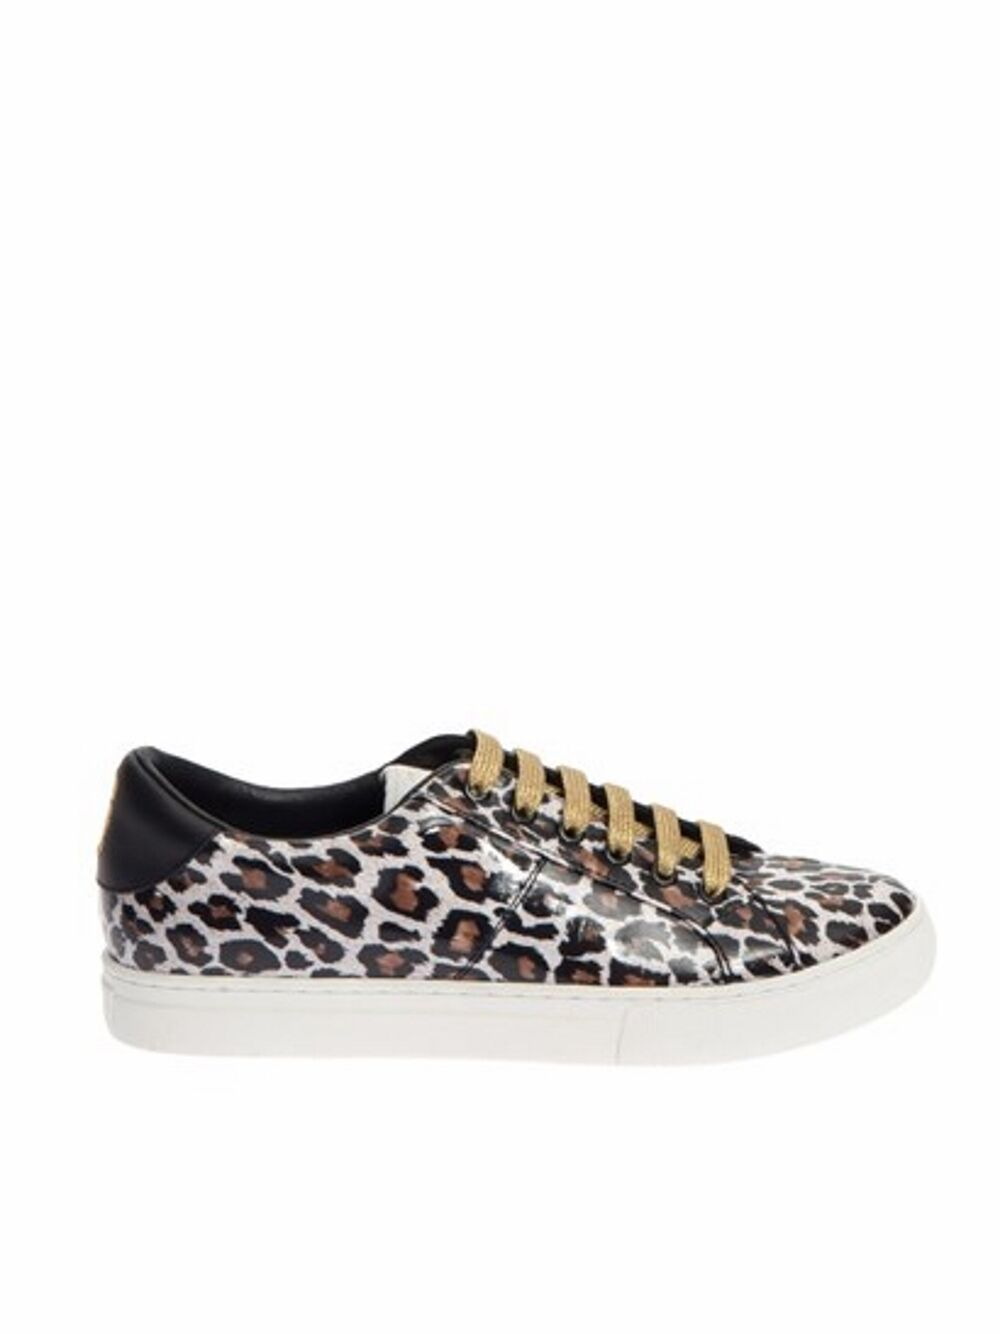 Marc Jacobs Sneakers animalier, empire sneakers lace uo sneakers empire 9273f4